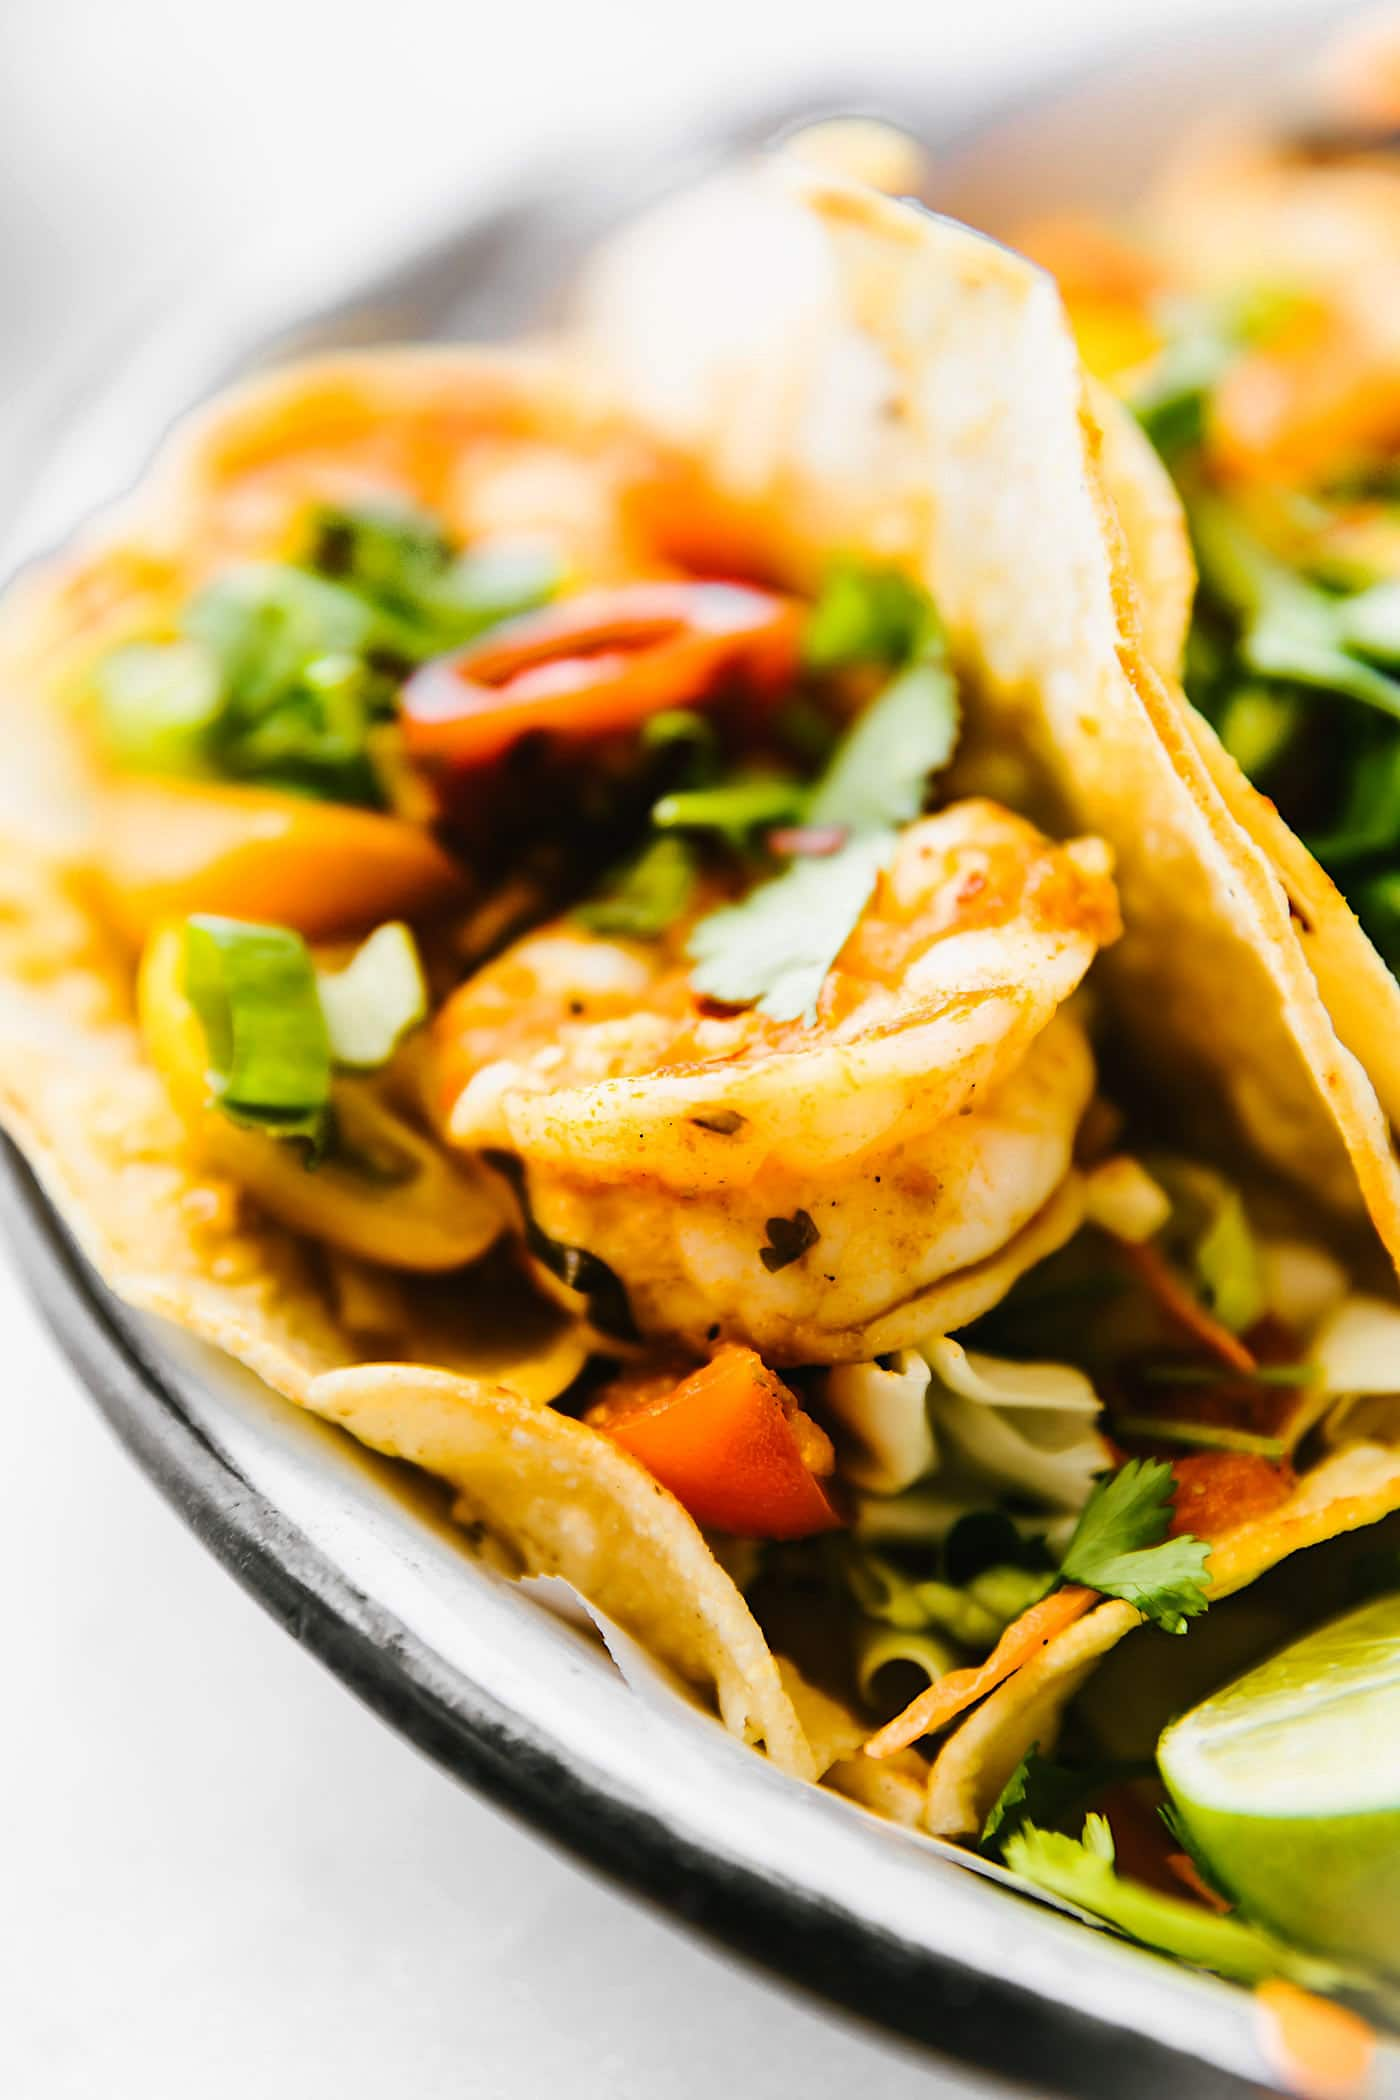 CROCK POT FIRE ROASTED TOMATO SHRIMP TACOS! The easiest tastiest way to make tacos! Plus this recipe makes for the perfect healthy dinner for busy weeknights Paleo option. #paleo option #crockpot